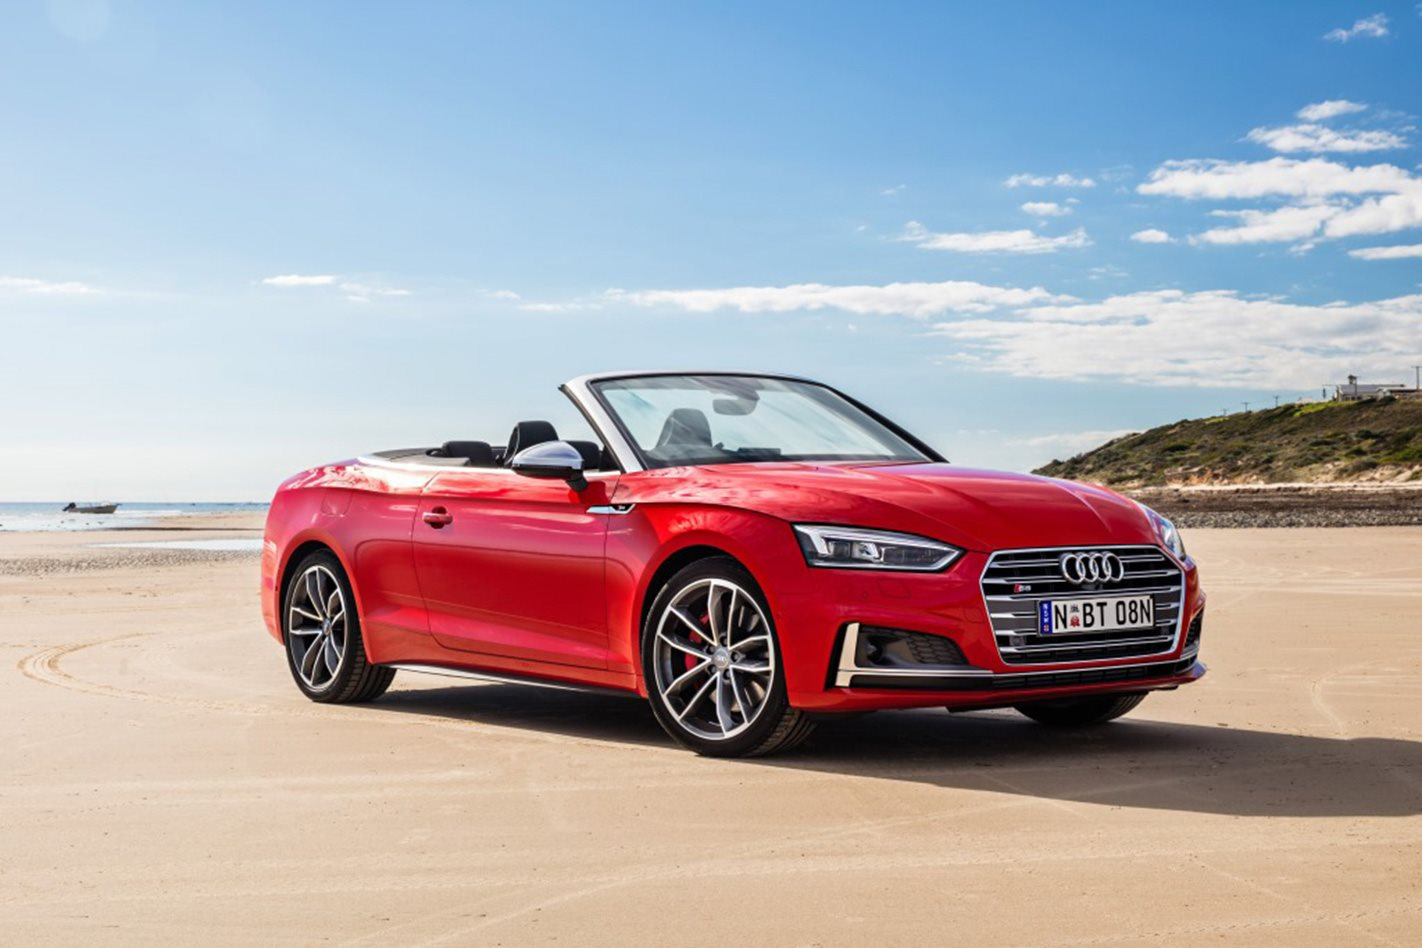 2017 Audi S5 Cabriolet convertible